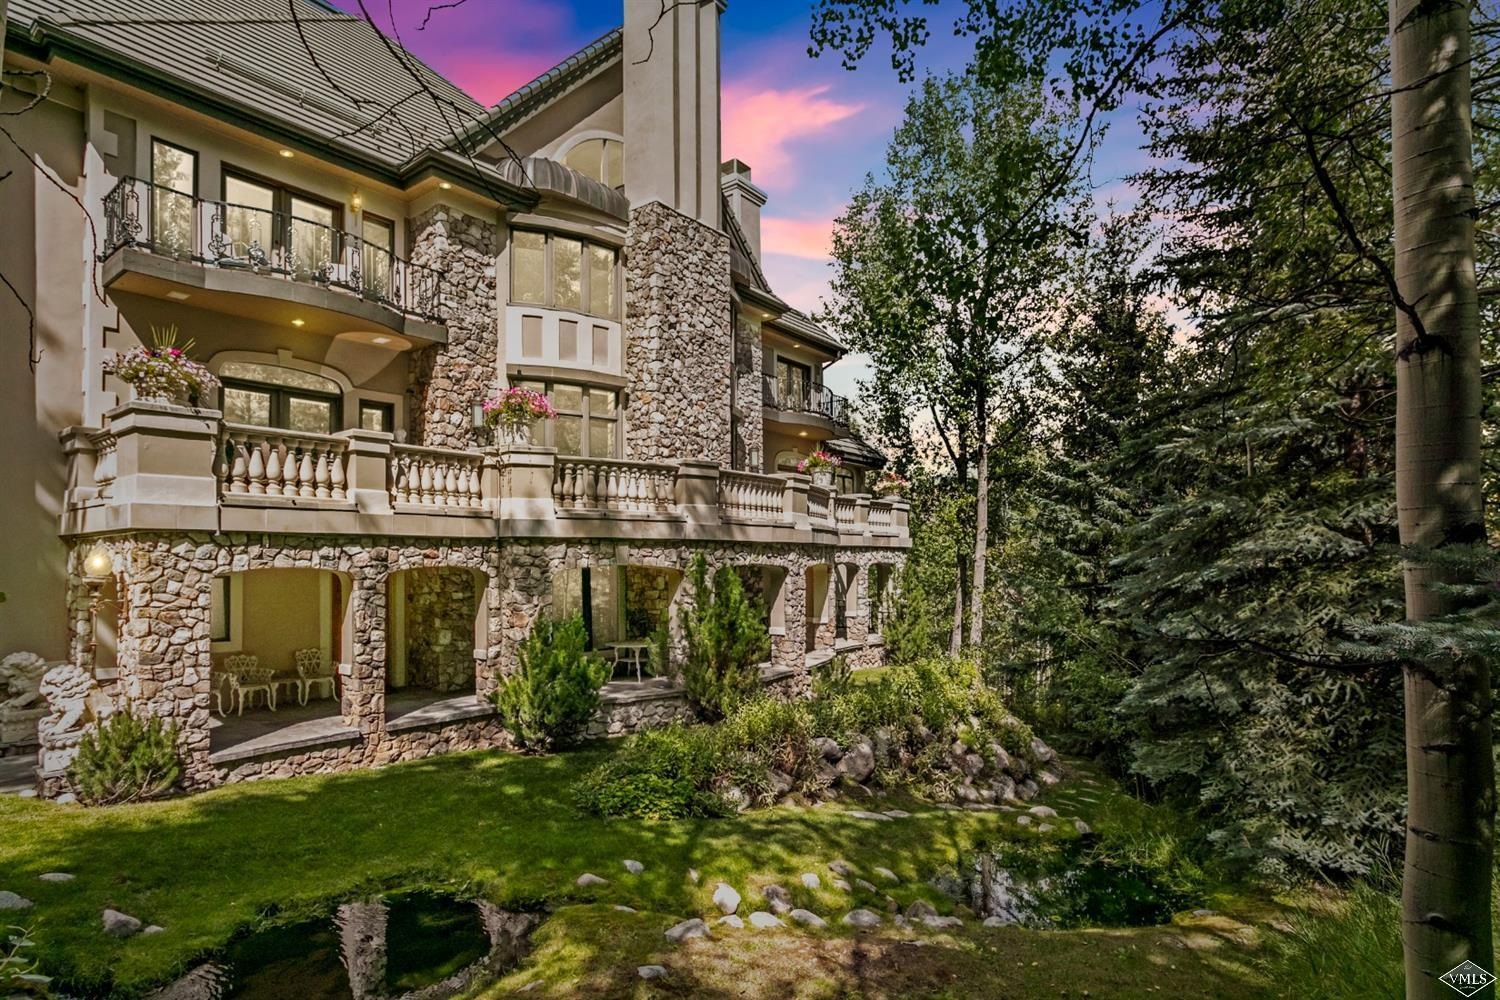 Reminiscent of the chateaus on the fabled Cote d'Azure, this 8-bedroom European-inspired contemporary manor is the pinnacle of elegance and prestige. Fall in love with the attention to detail, rich textures, romantic decorative forms, superb terraces and exceptional views of the ski mountain. Located within the gates of Beaver Creek, this iconic residence is a must-see for the refined buyer. Relish in quintessential Colorado living in this private, perfectly executed estate. www.BCHolden.com